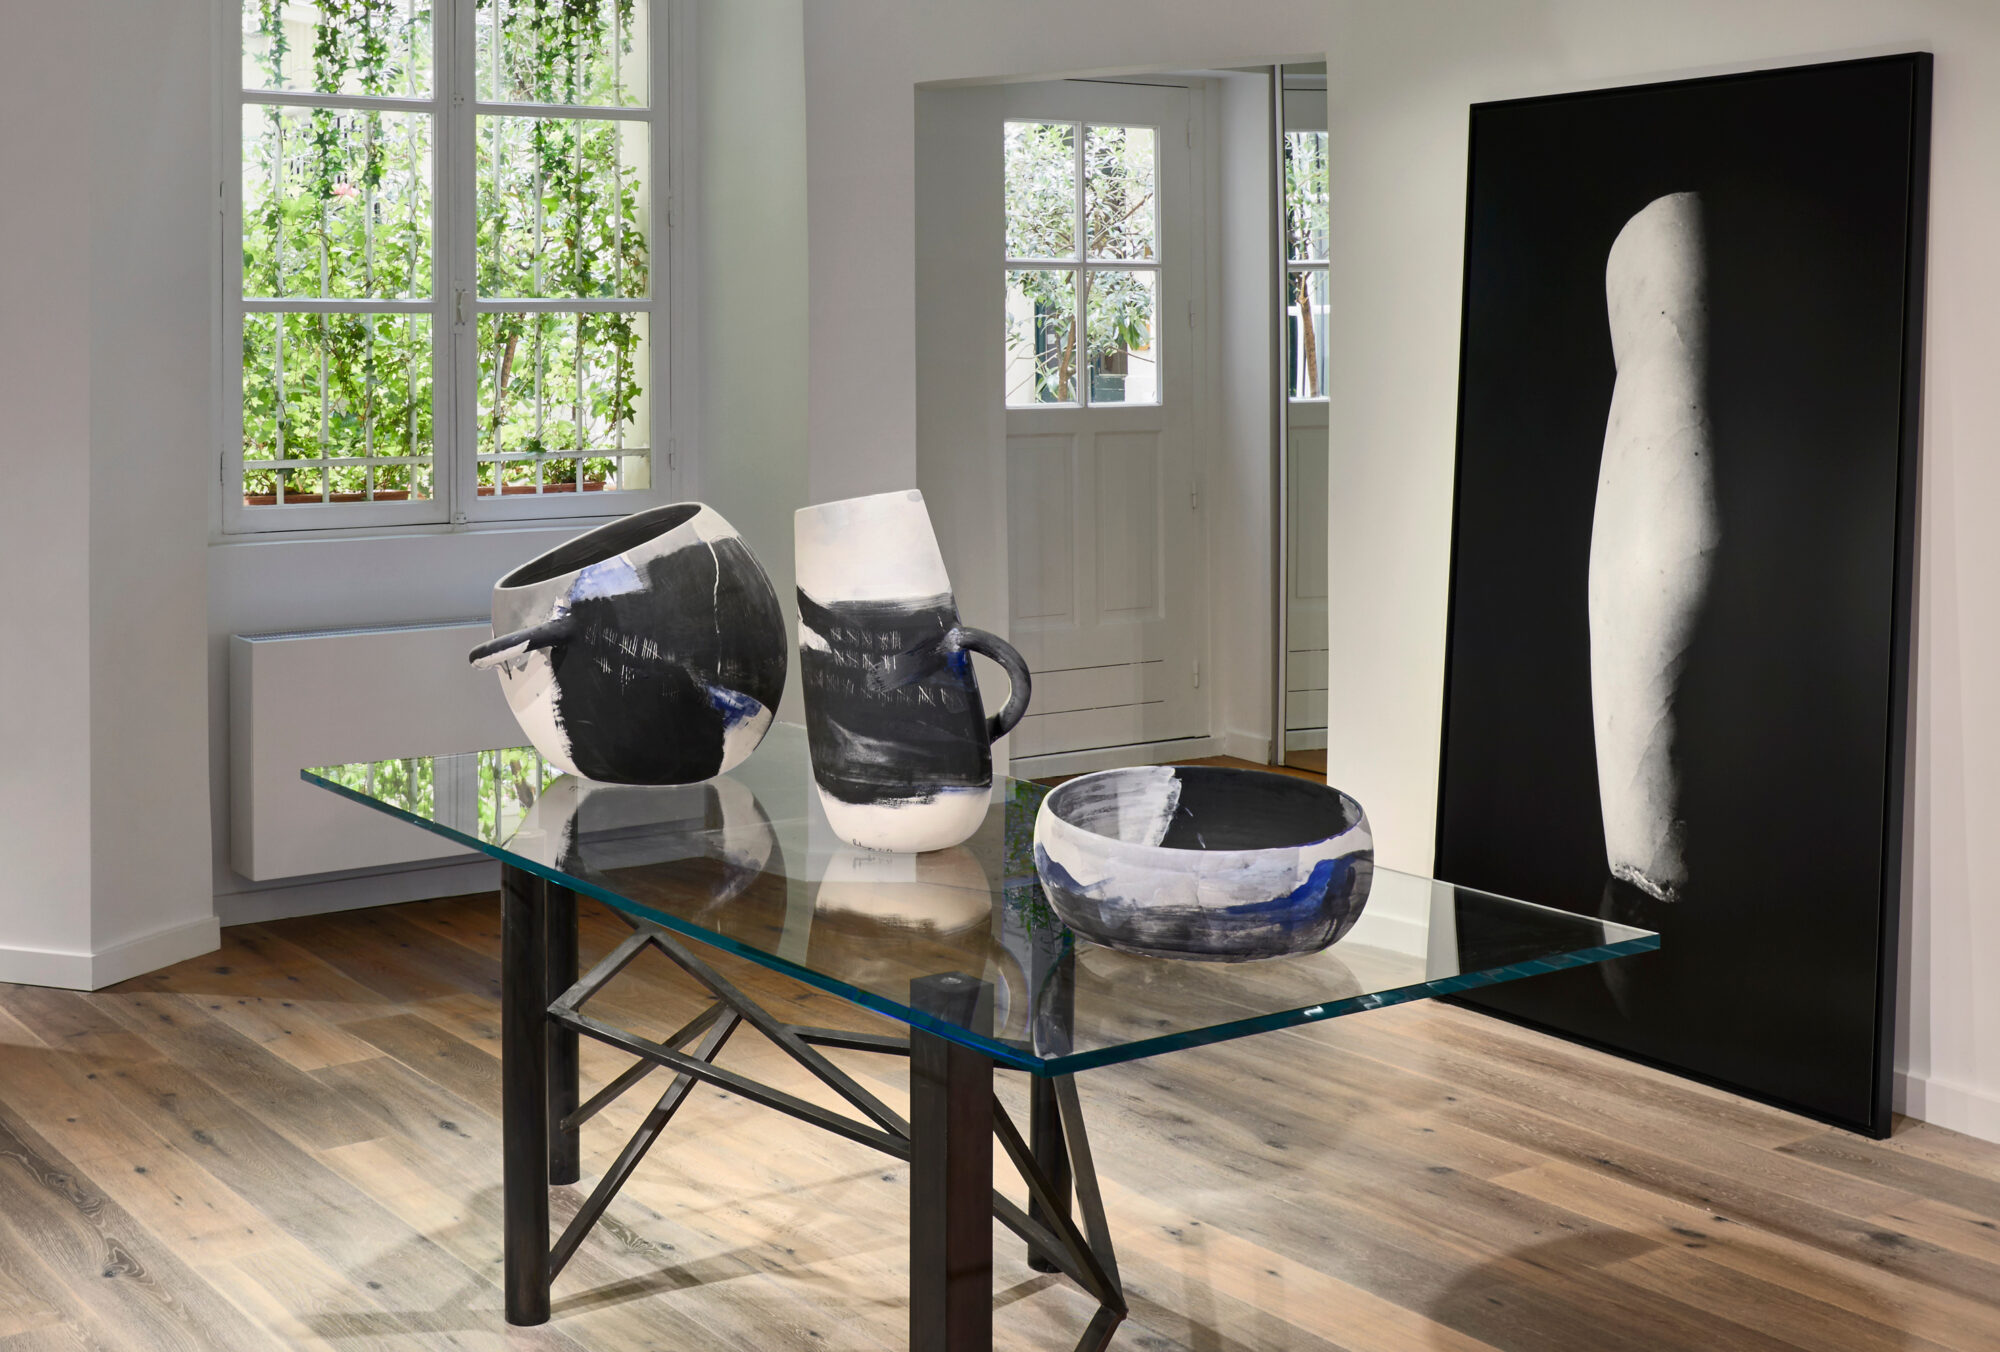 Seven Years of Reflection - Galerie Negropontes